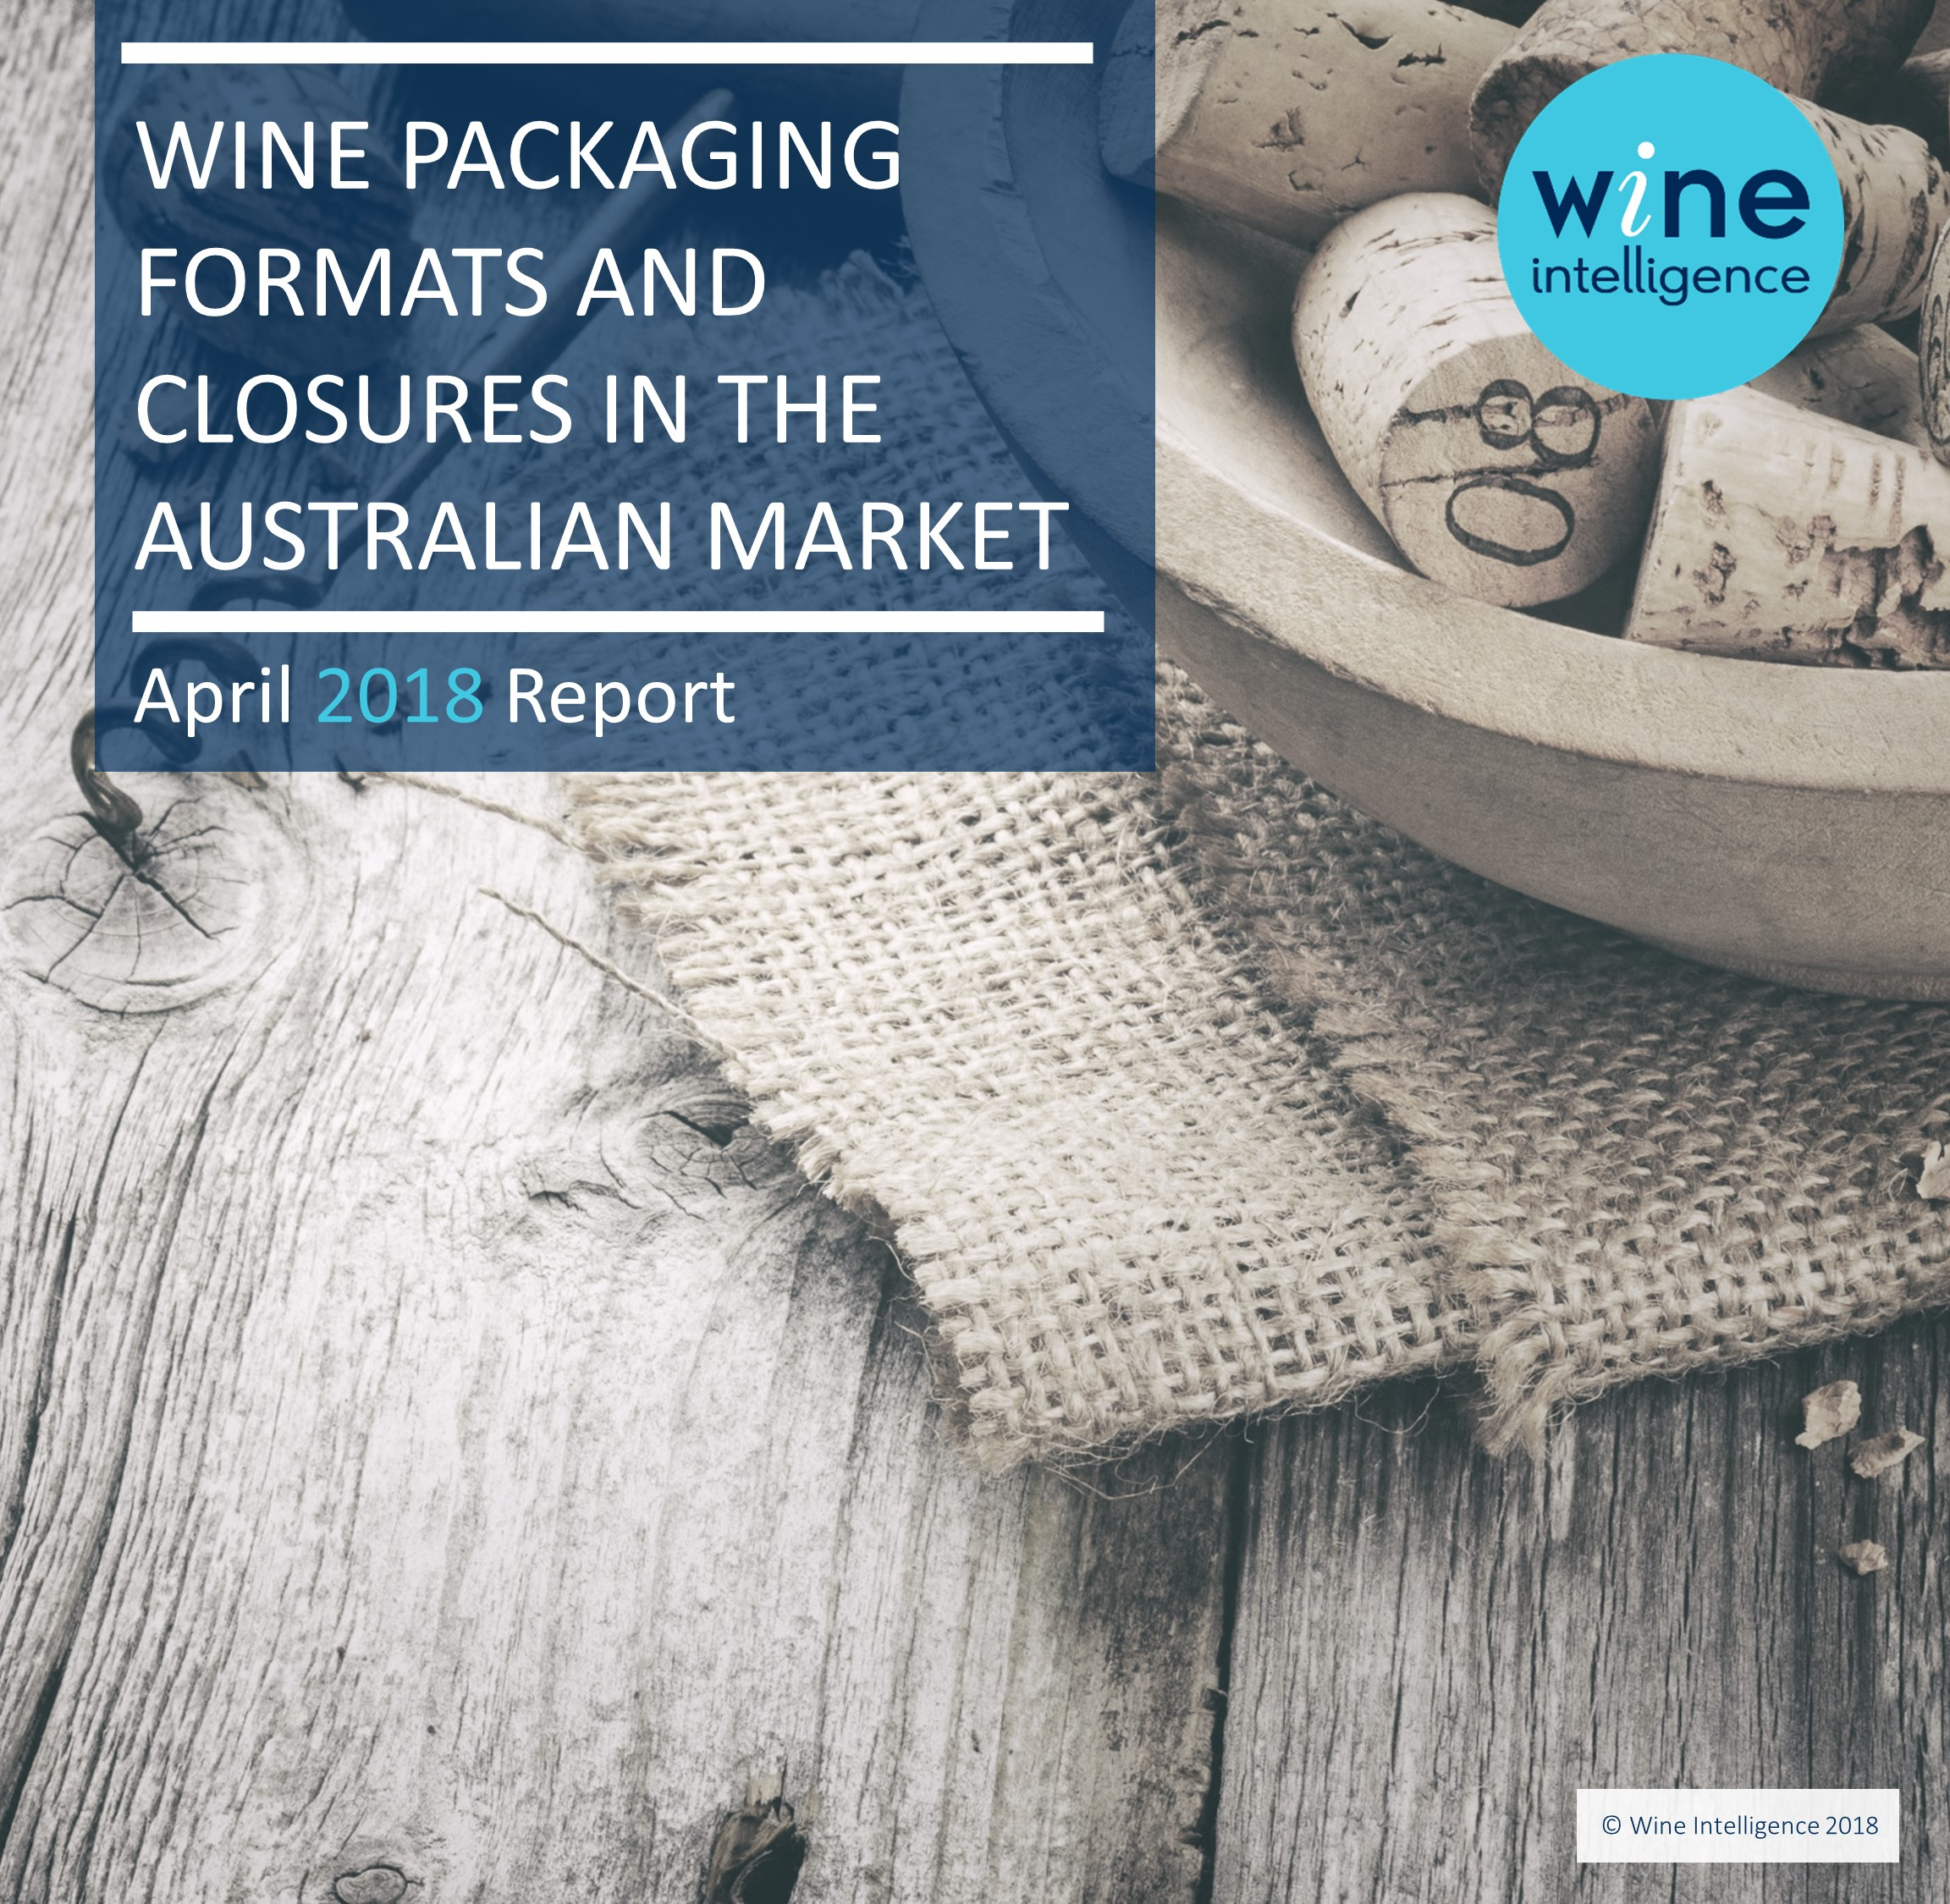 Australia Packaing Formats and Closures in the Australian Market 2018 - Press release: Wine Intelligence and Women of the Vine & Spirits form strategic alliance